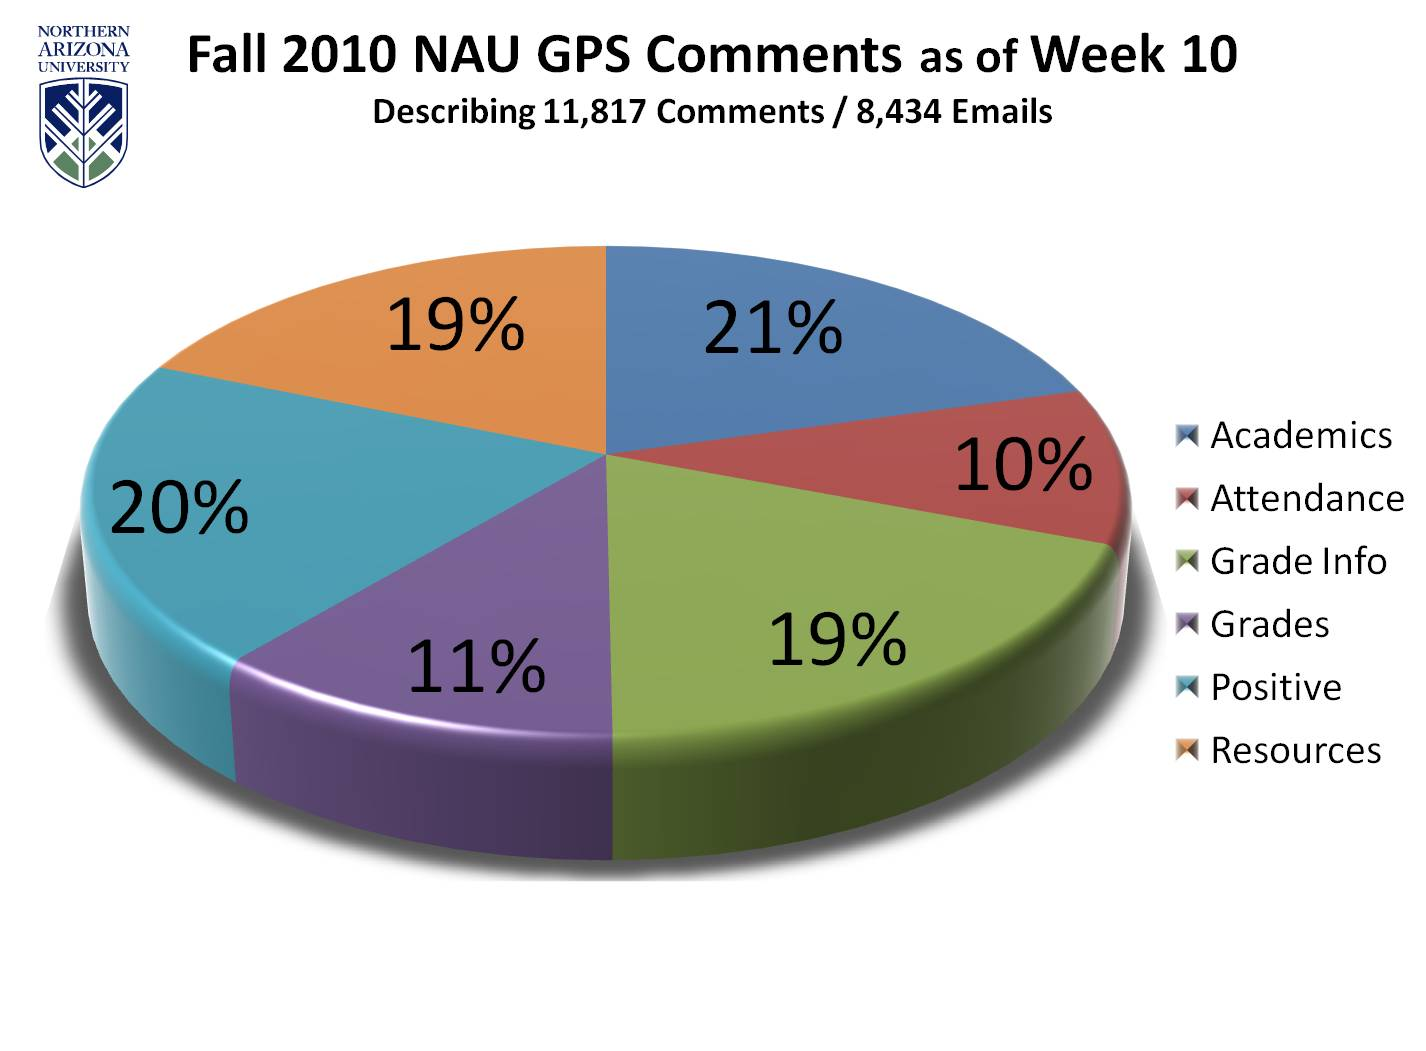 Gps shaping student success one conversation at a time educause image is a pie chart title is fall 2010 nau gps comments as of week 10 nvjuhfo Choice Image